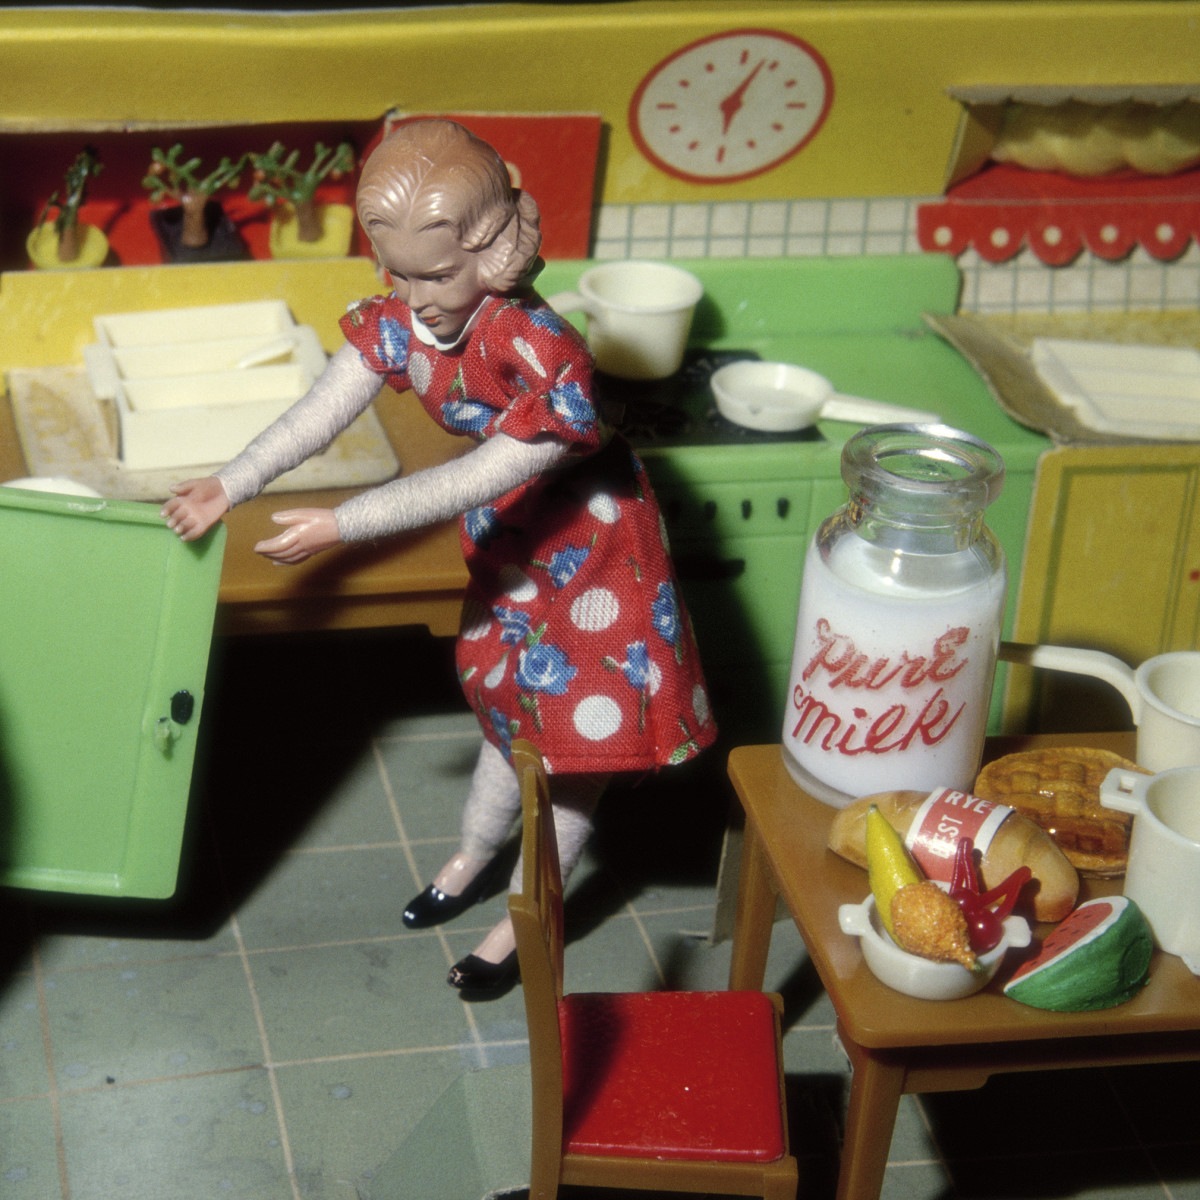 Woman Opening Refrigerator/Milk to the Right